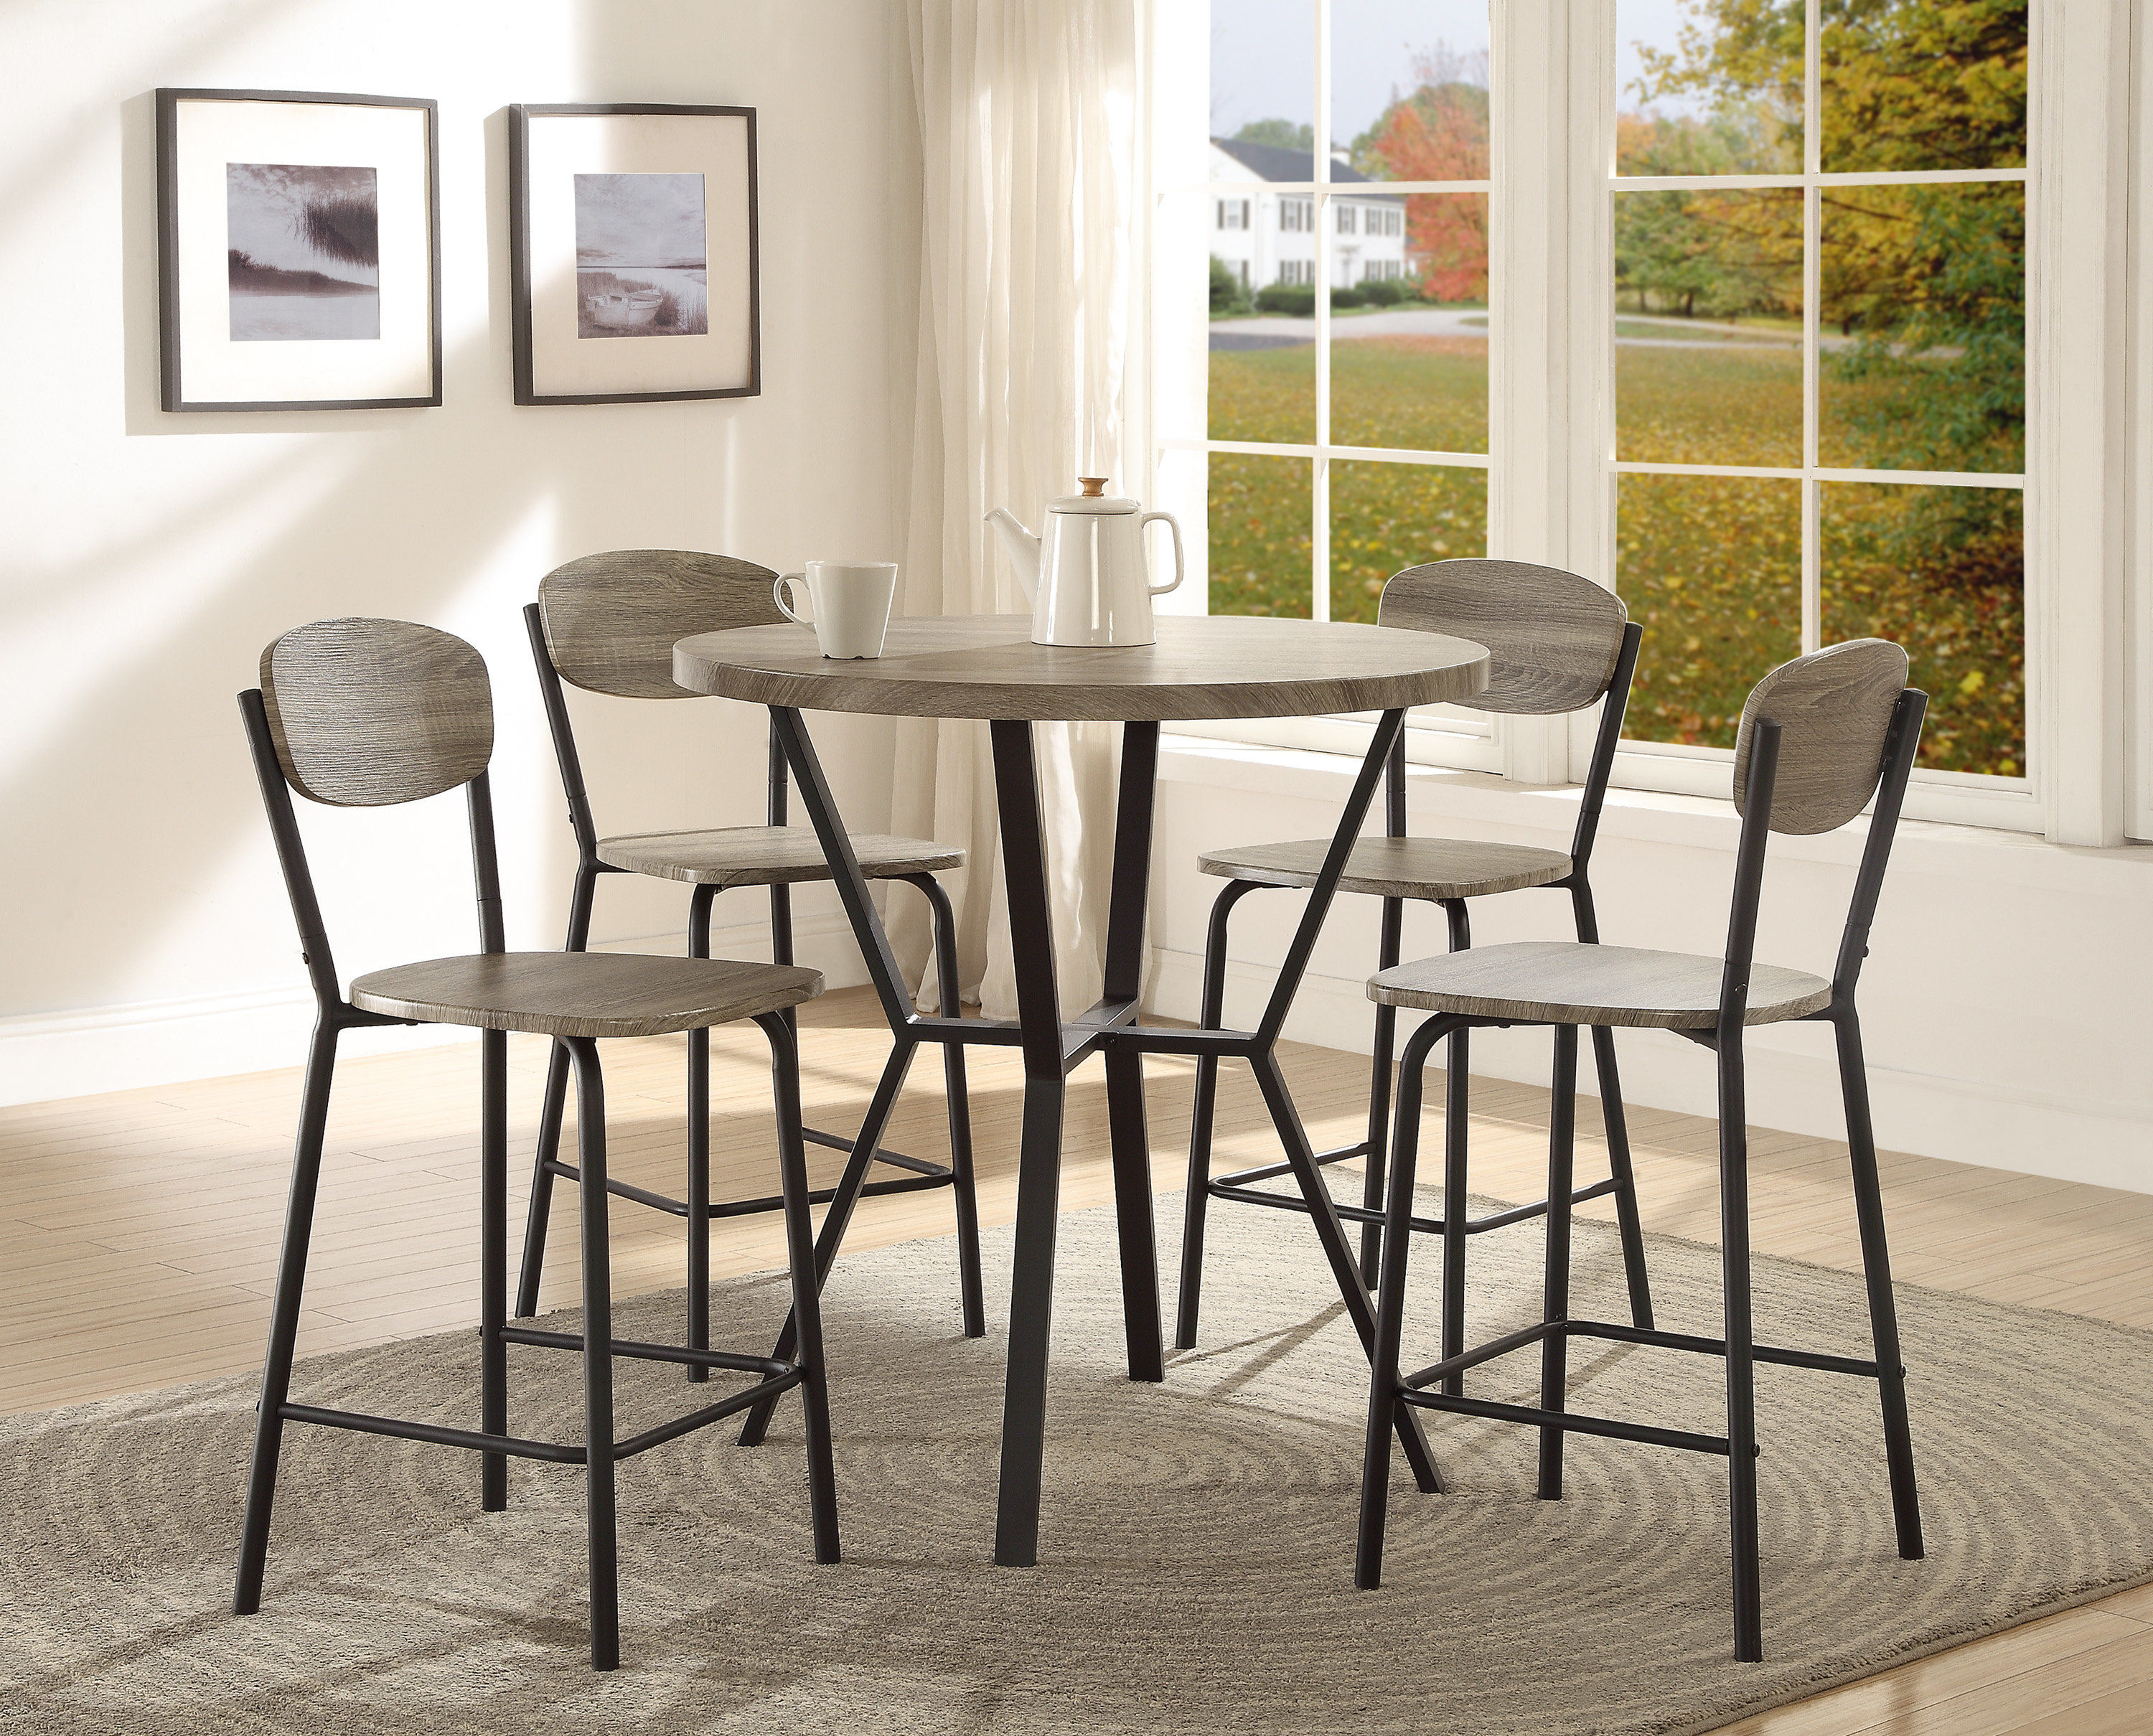 Preferred Middleport 5 Piece Dining Sets Pertaining To Millwood Pines Felicia 5 Piece Counter Height Dining Set & Reviews (#13 of 20)